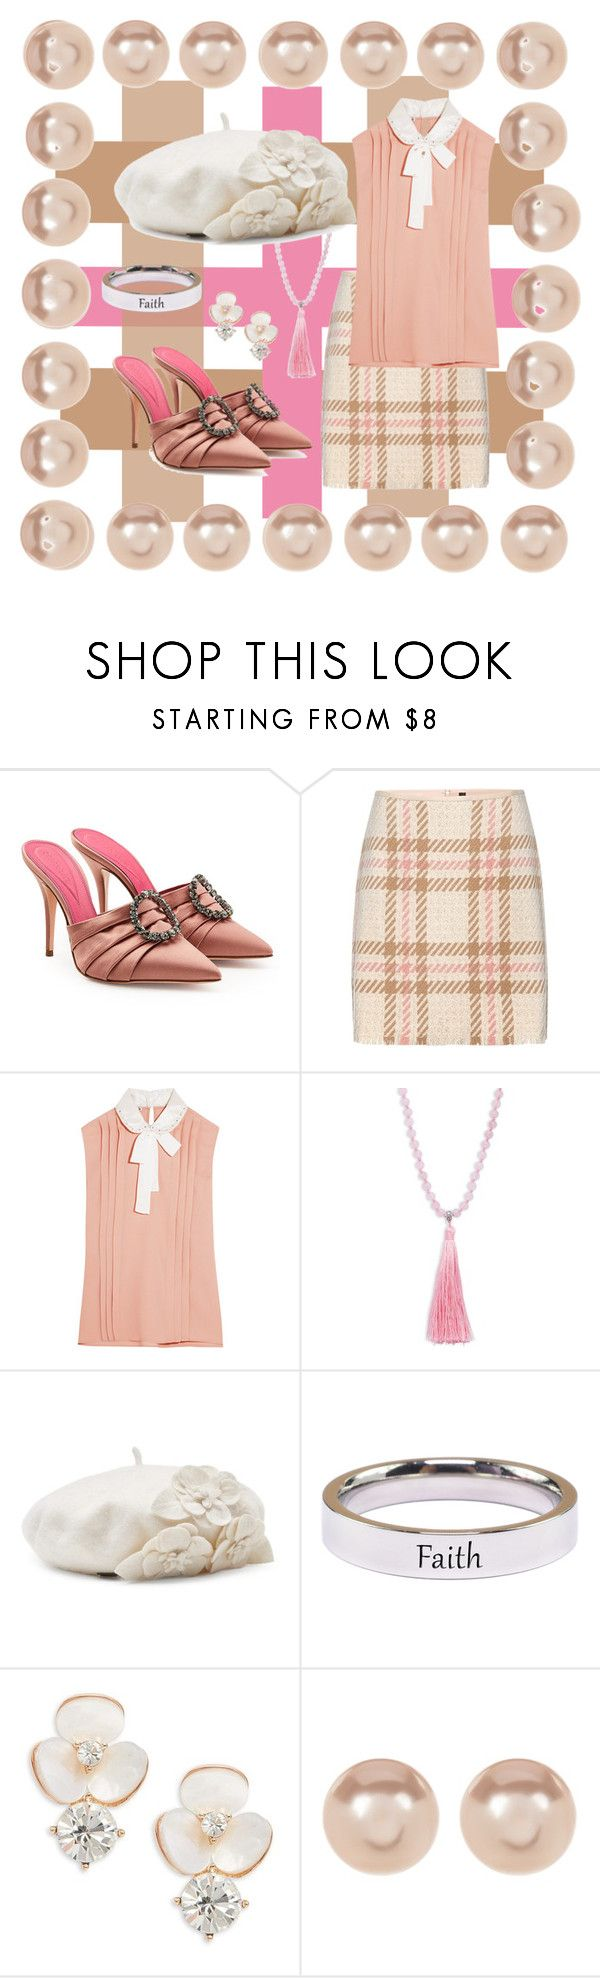 """Pink and Tan"" by the-big-l ❤ liked on Polyvore featuring Oscar Tiye, MARC CAIN, Miu Miu, Elise M., Betmar, Pink Box, Kate Spade, Nordstrom Rack and plaid"